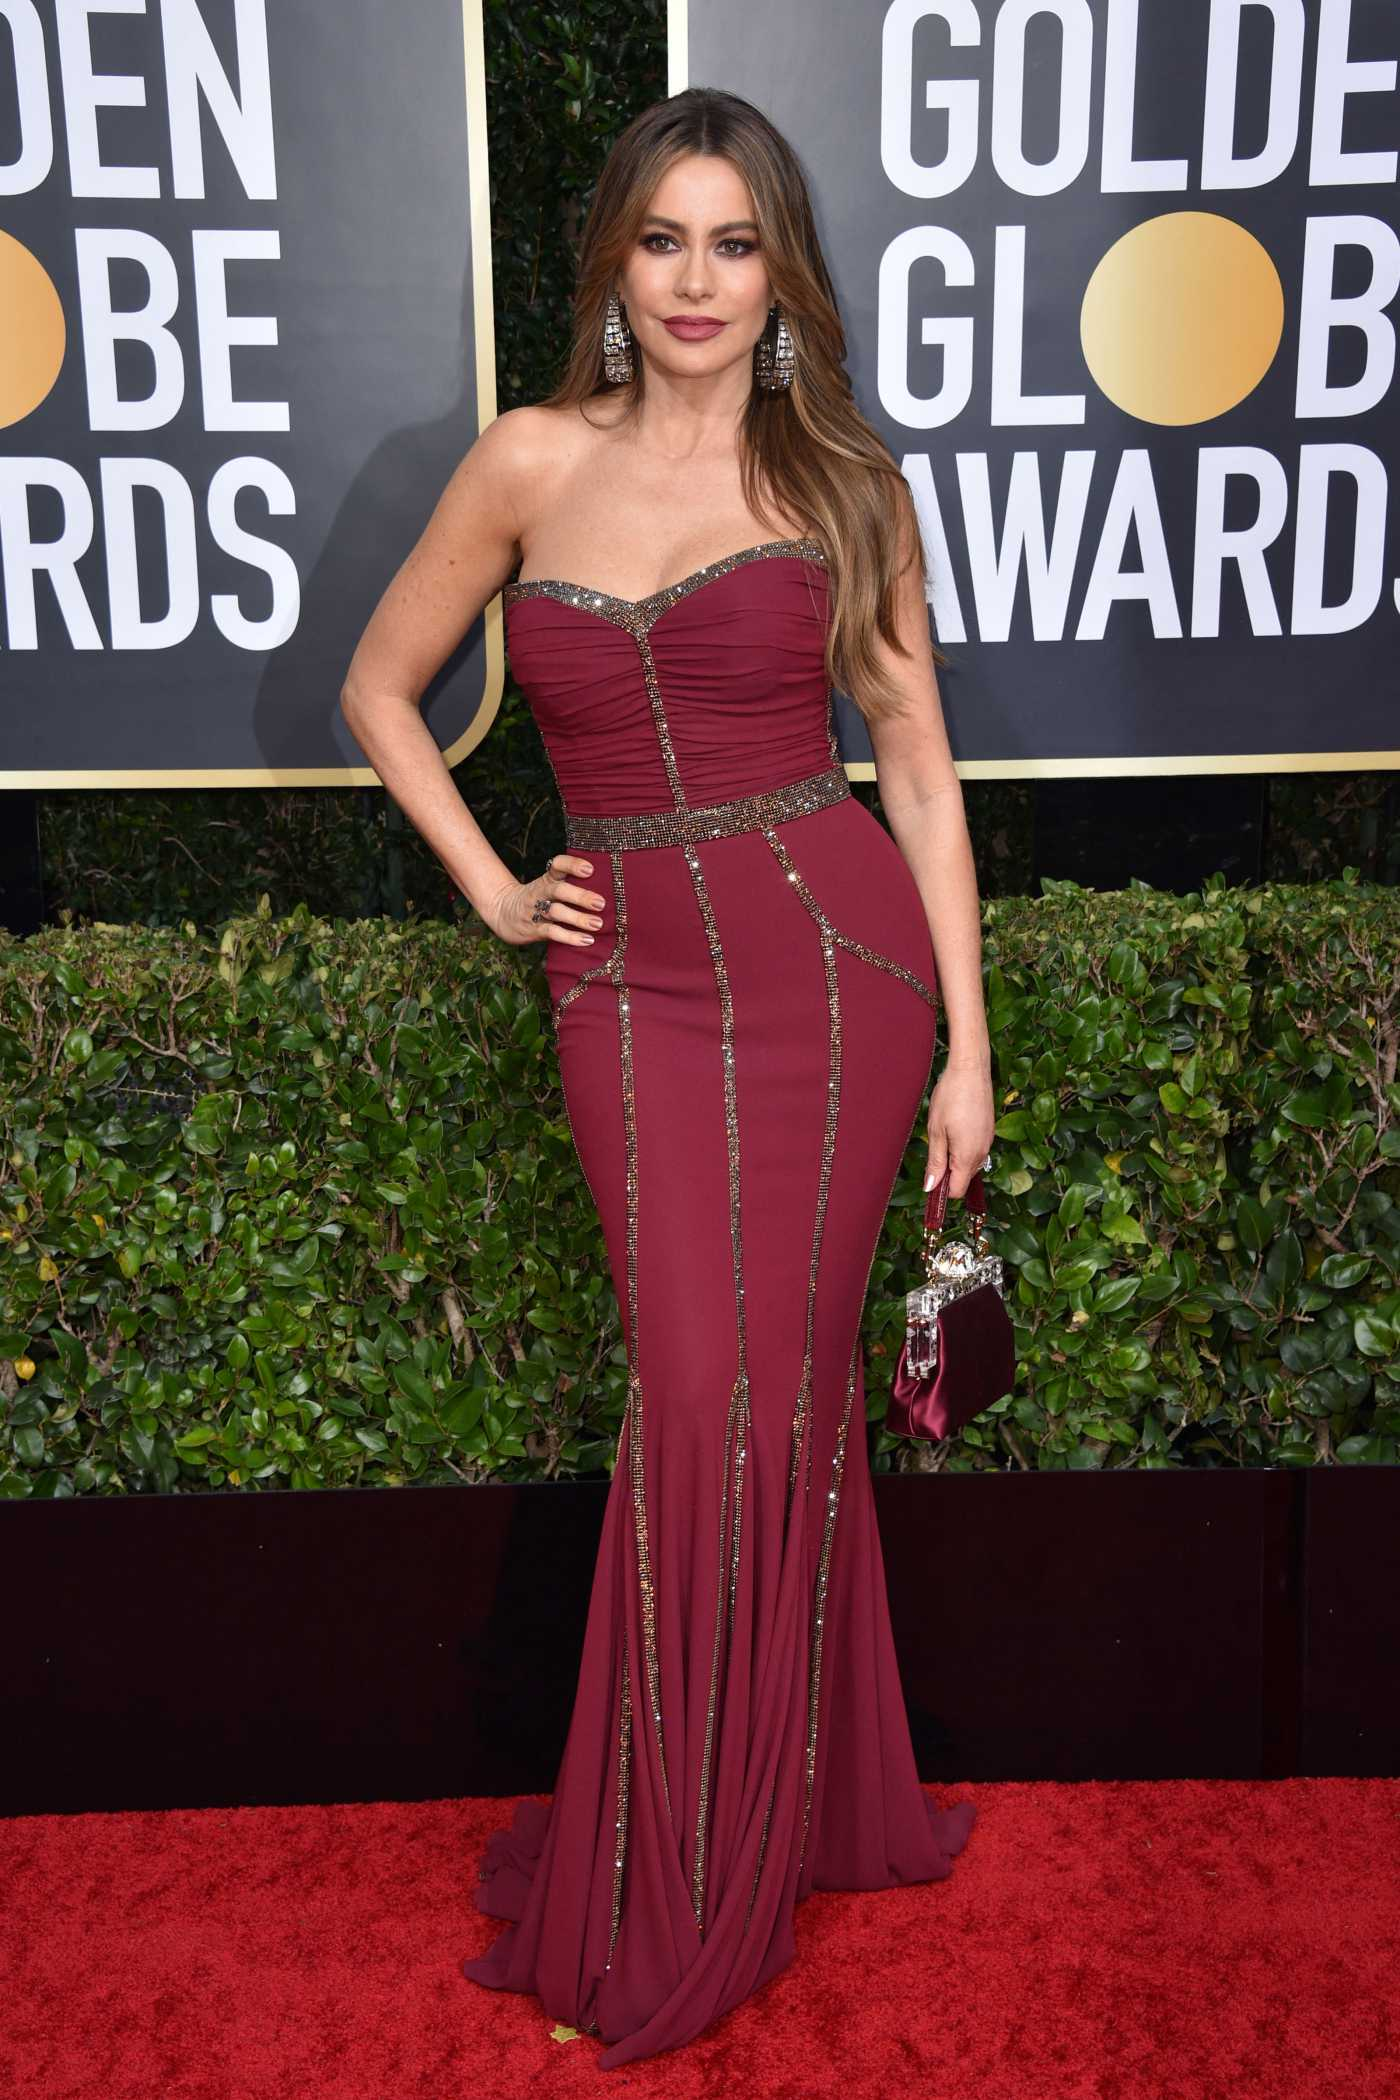 Sofia Vergara Attends the 77th Annual Golden Globe Awards at the Beverly Hilton Hotel in Beverly Hills 01/05/2020